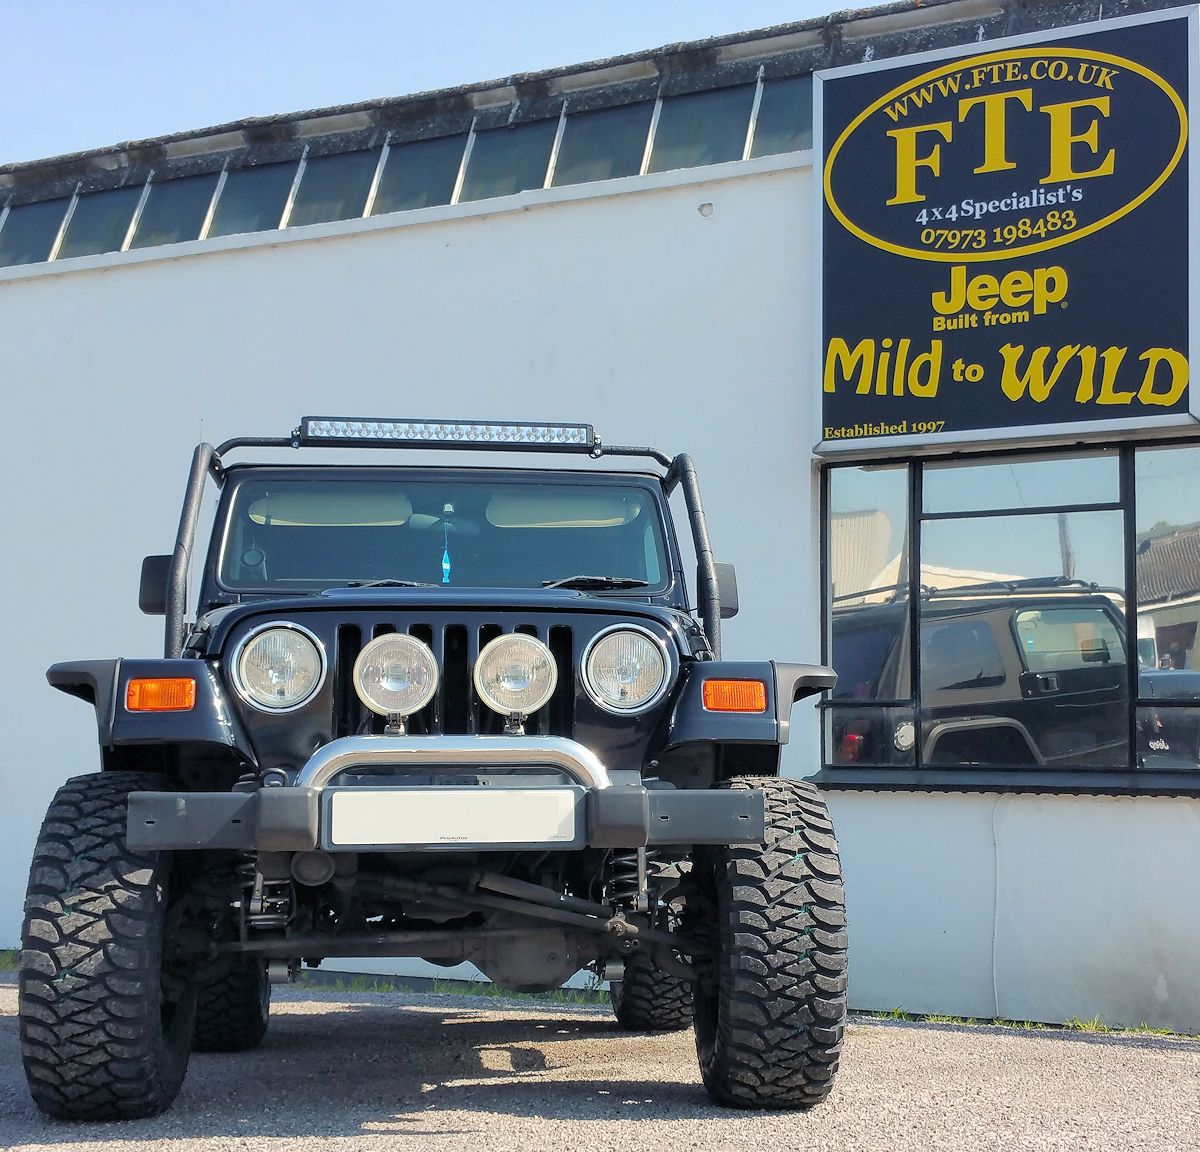 Jame S Wrangler Tj Has Been Fitted With A Rubicon Express 3 5 Superflex Lift Rugged Ridge Hurricane Flares Smittybilt Roof Rack Sitting On A Set Of Mickey T